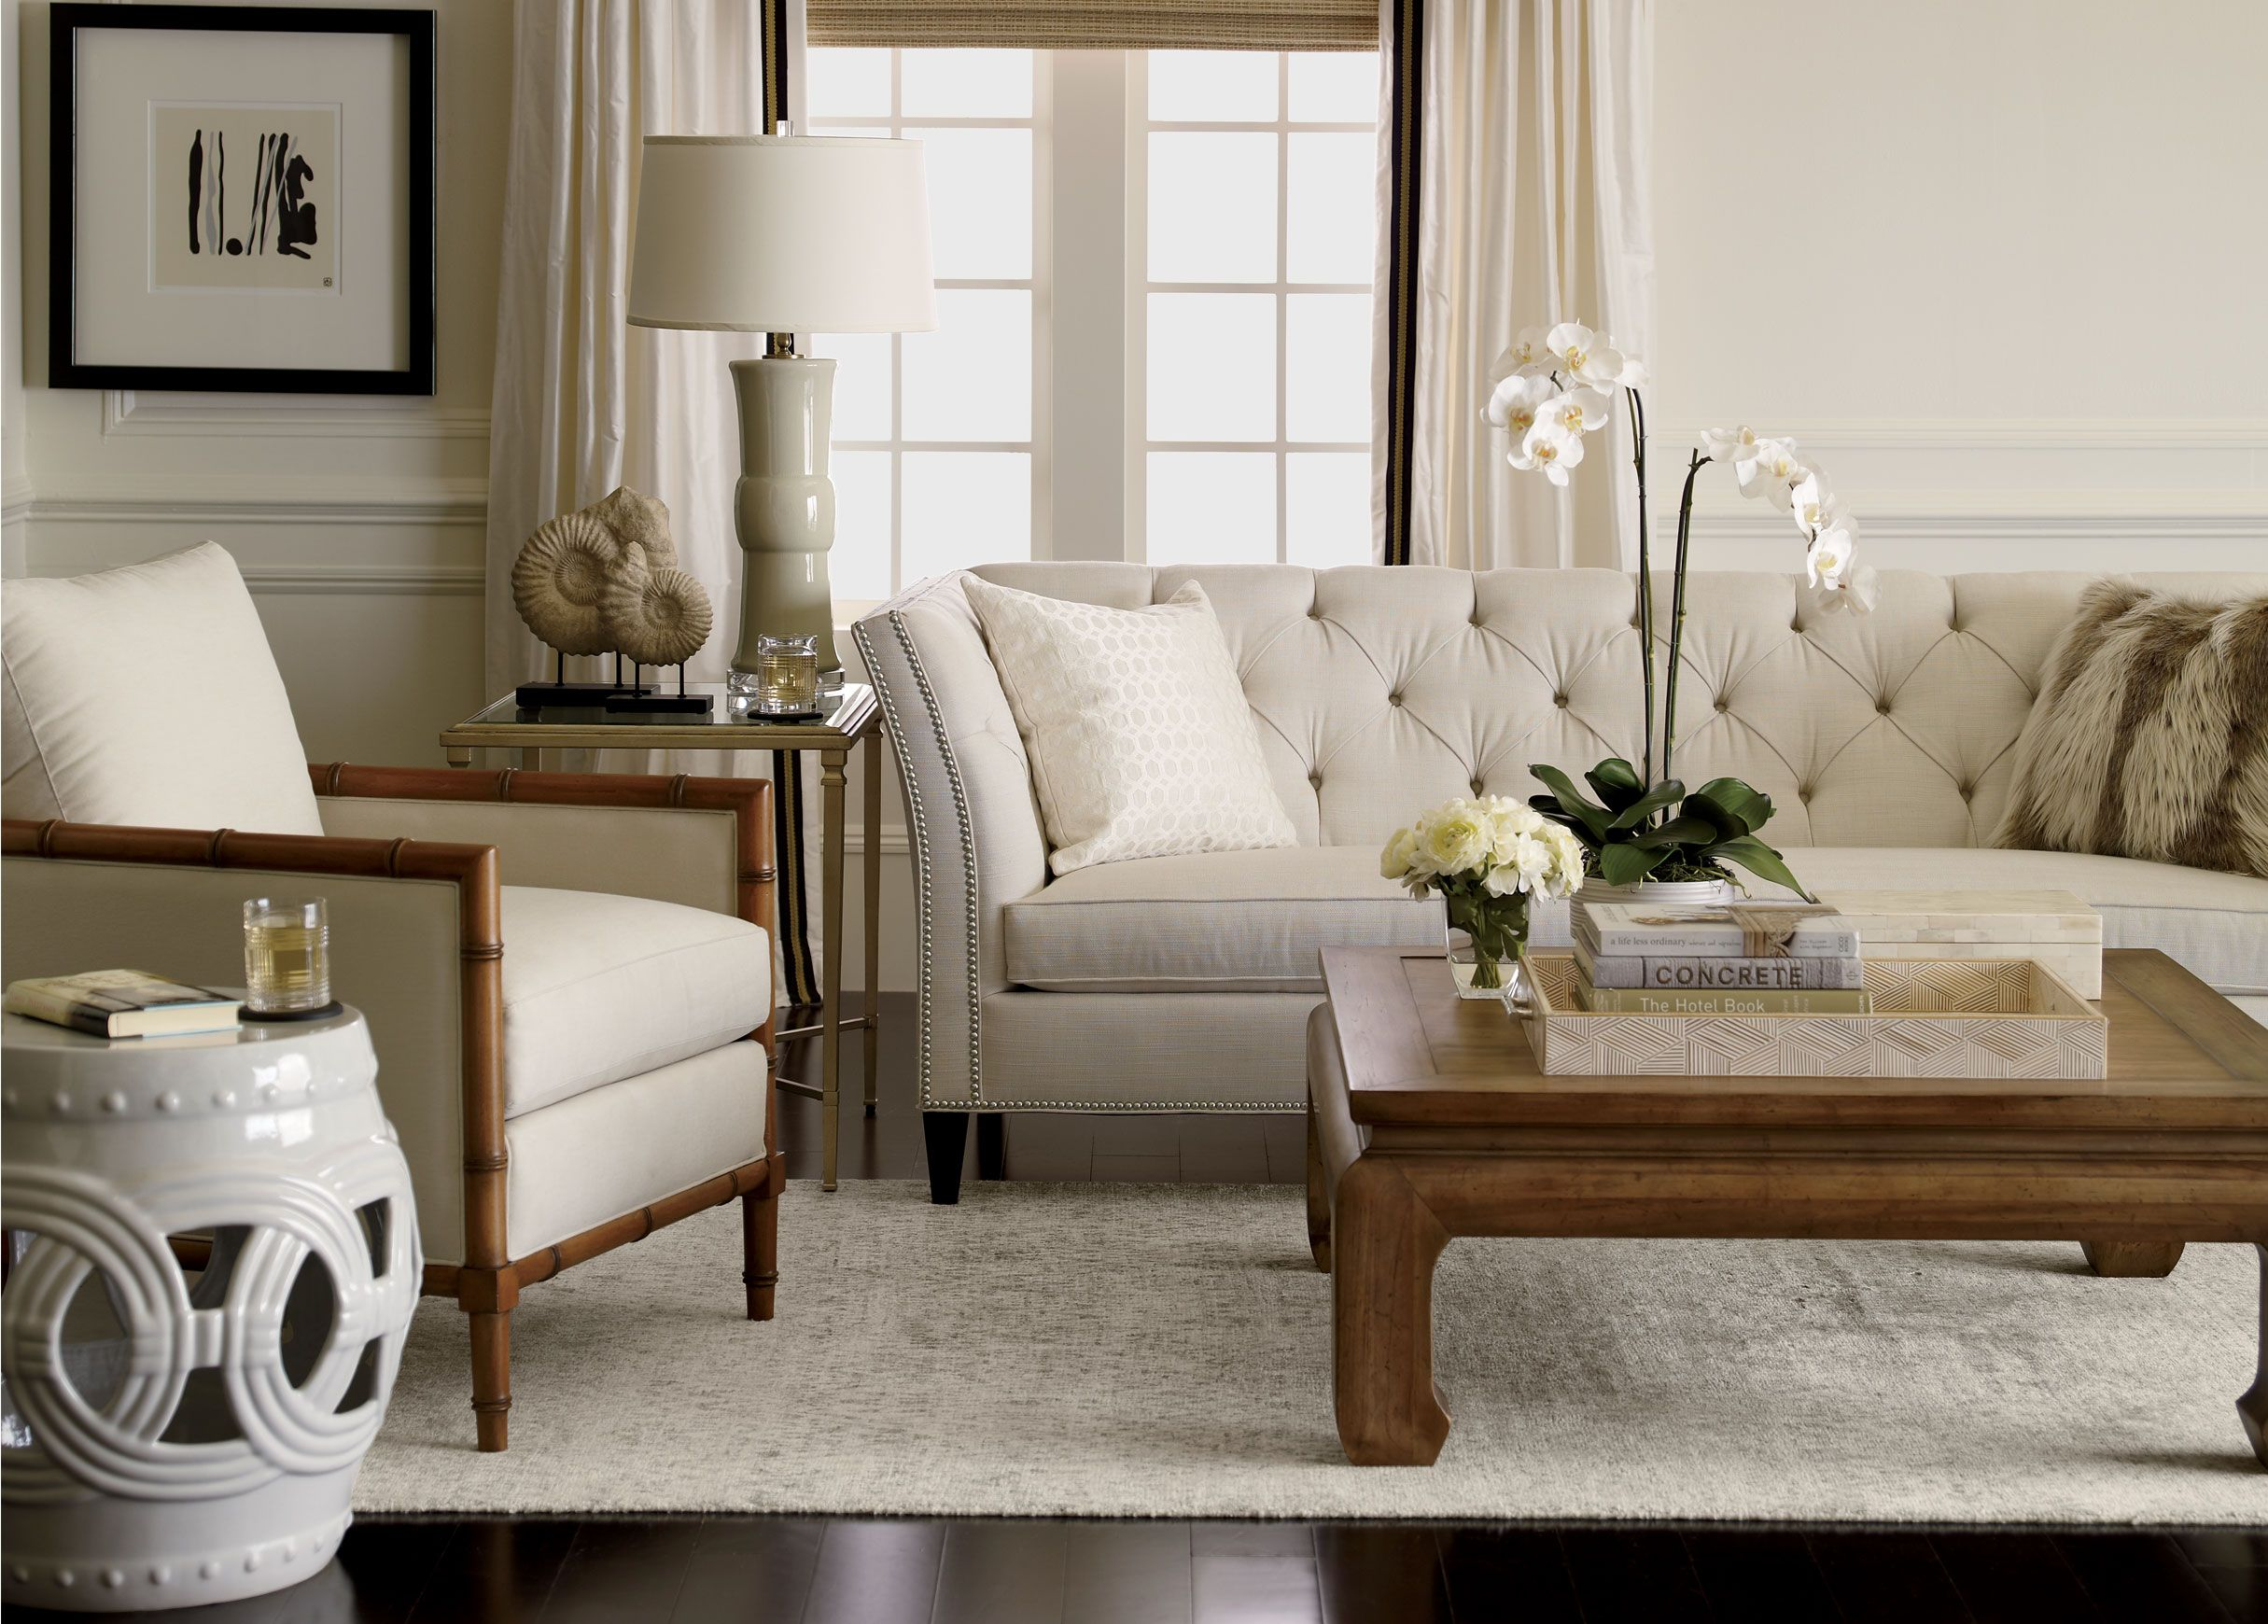 Ethan Allen Living Room Pics Wall Paint Color For Small Classic Neutral Meets Natural In A Comfortably Modern Mix Oasis Ethanallen Ethanallenbellevue Livingroom